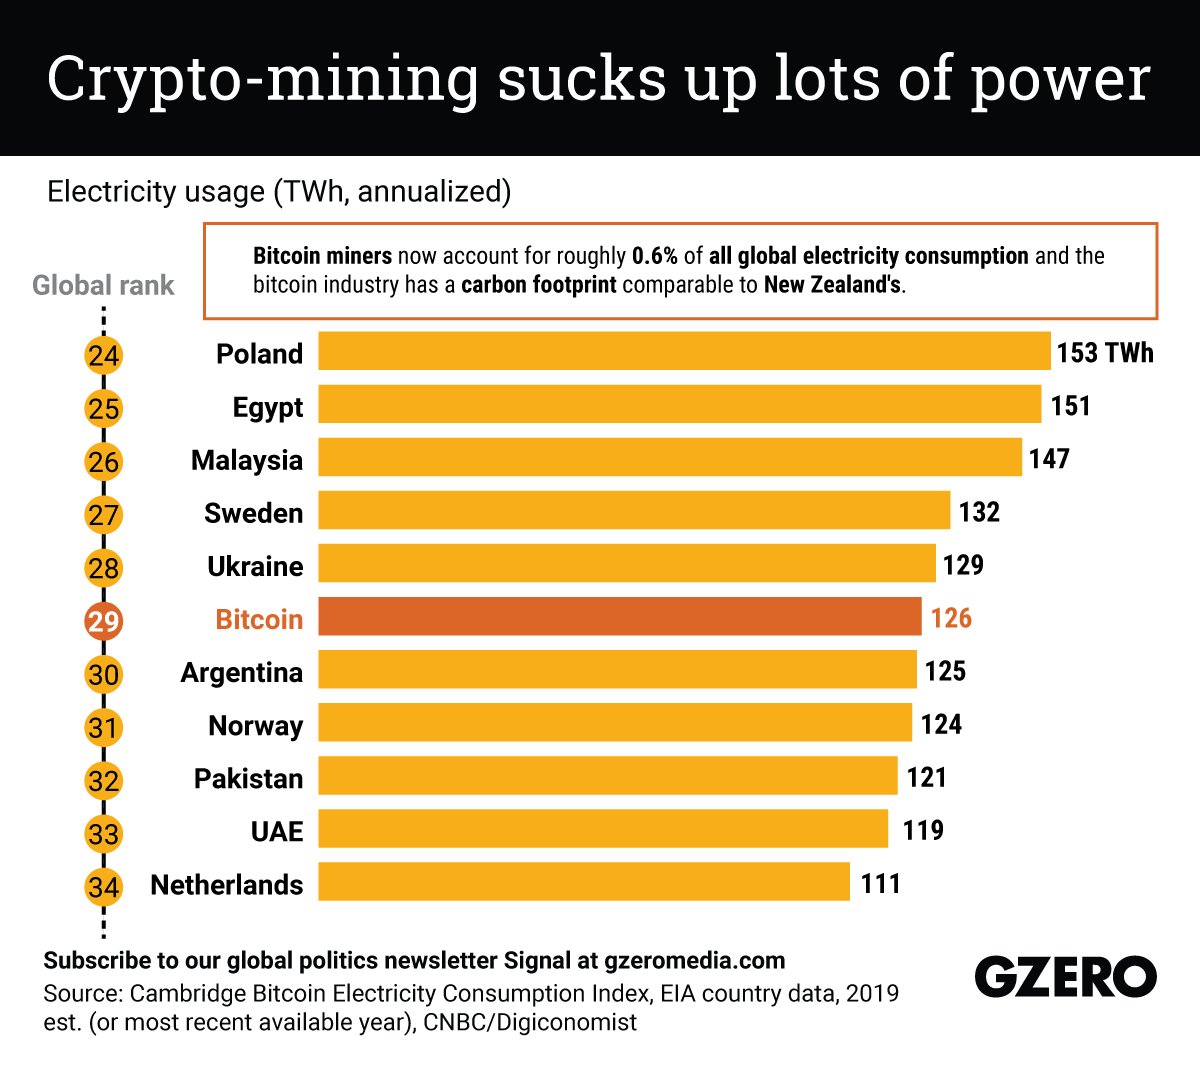 The Graphic Truth: Crypto-mining sucks up lots of power